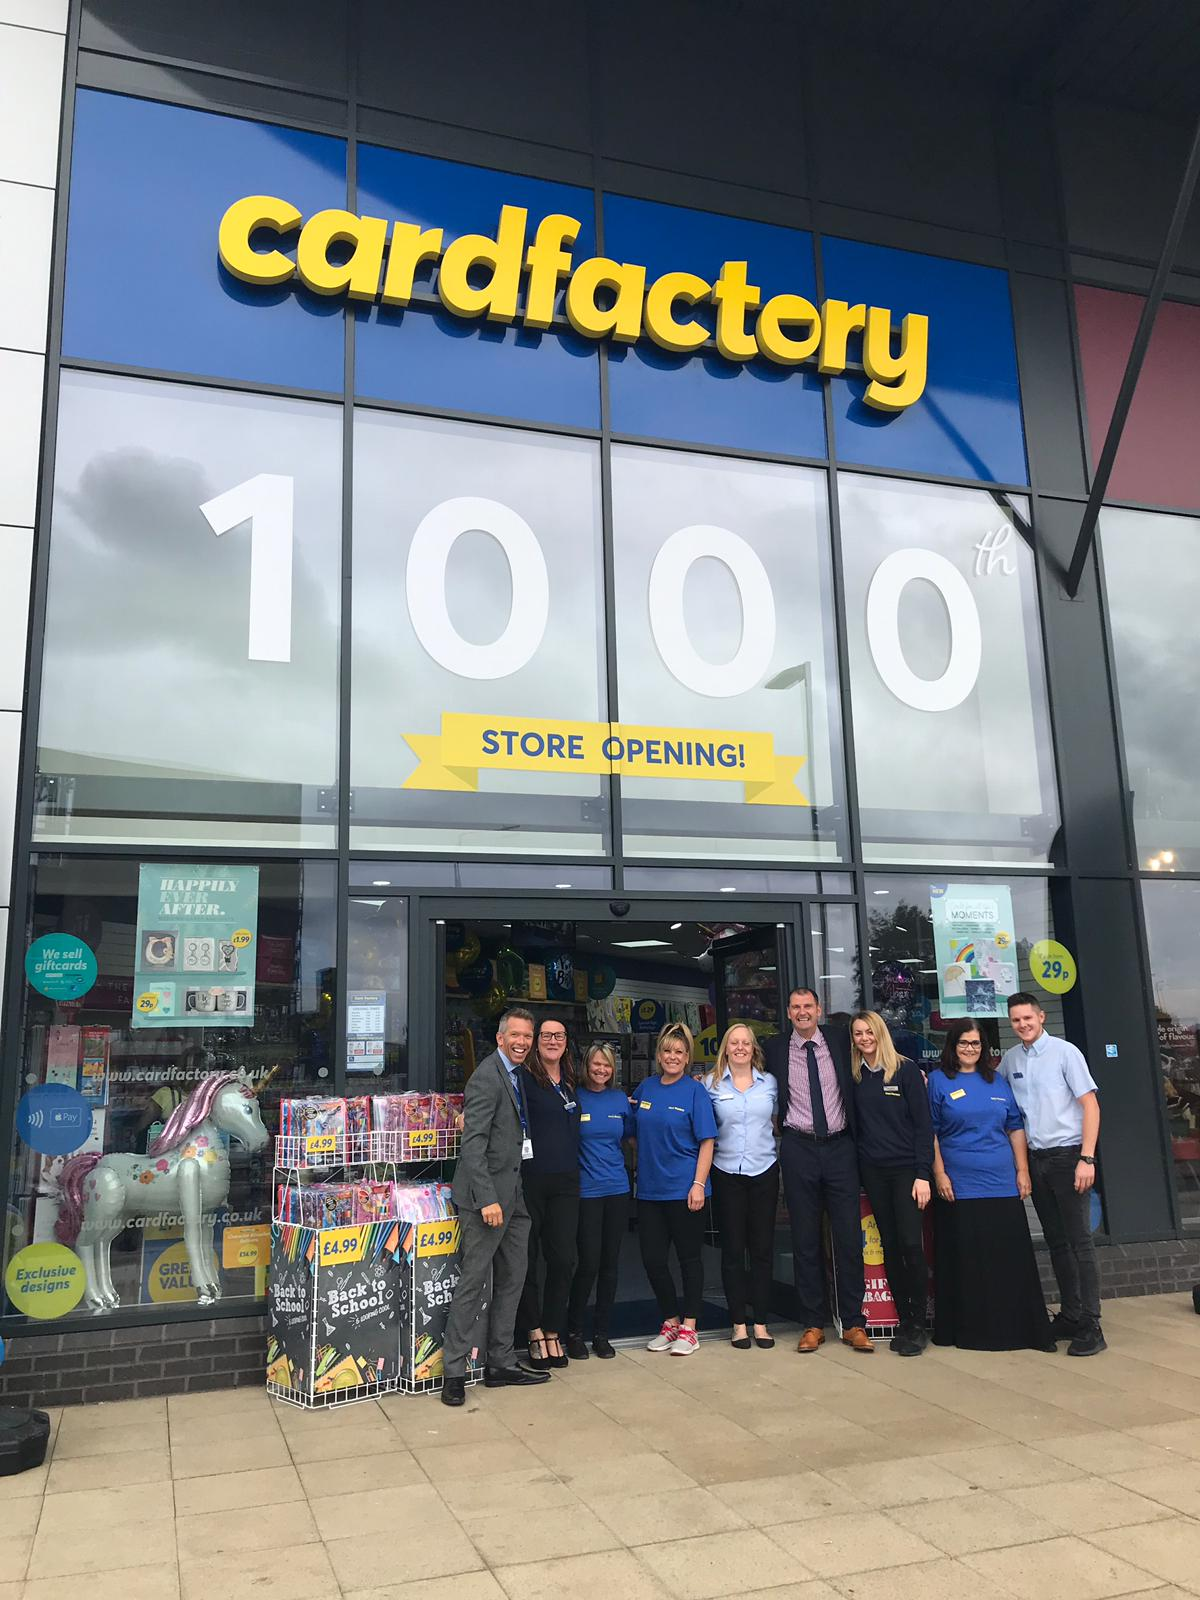 Above: Card Factory opened its 1000thstore recently.